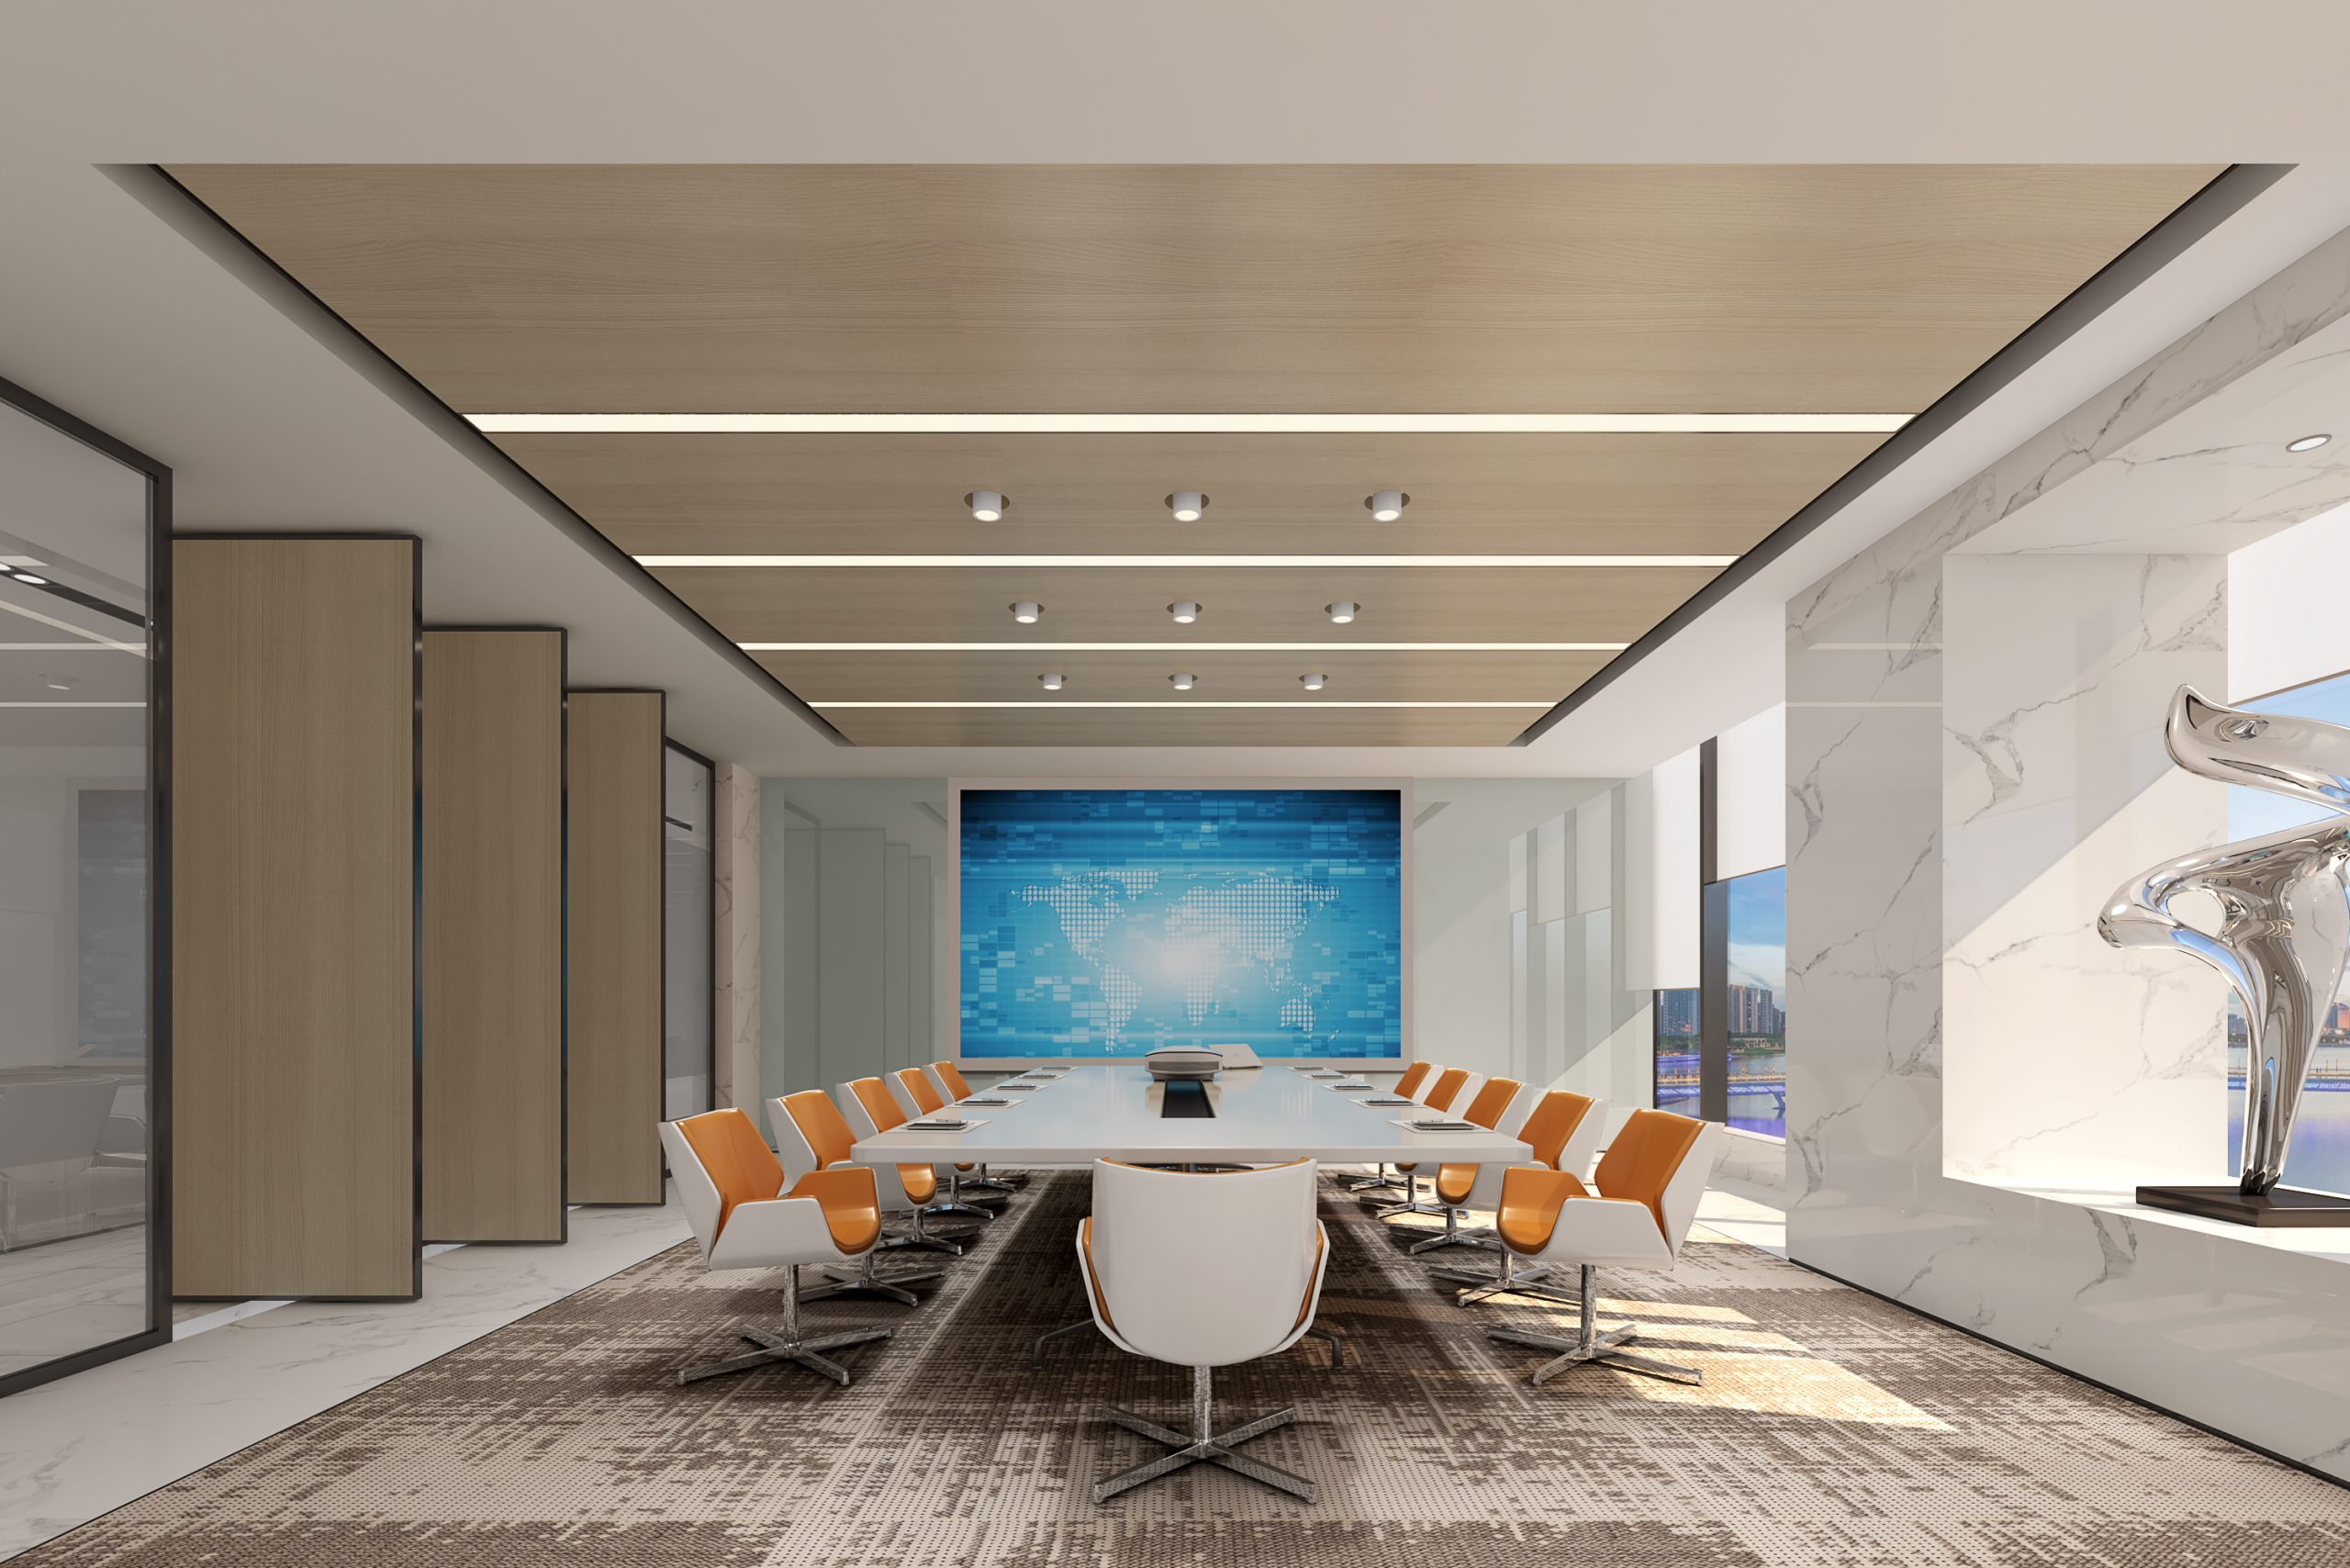 Conference room renderings: What you don't know is wasting your fortune!